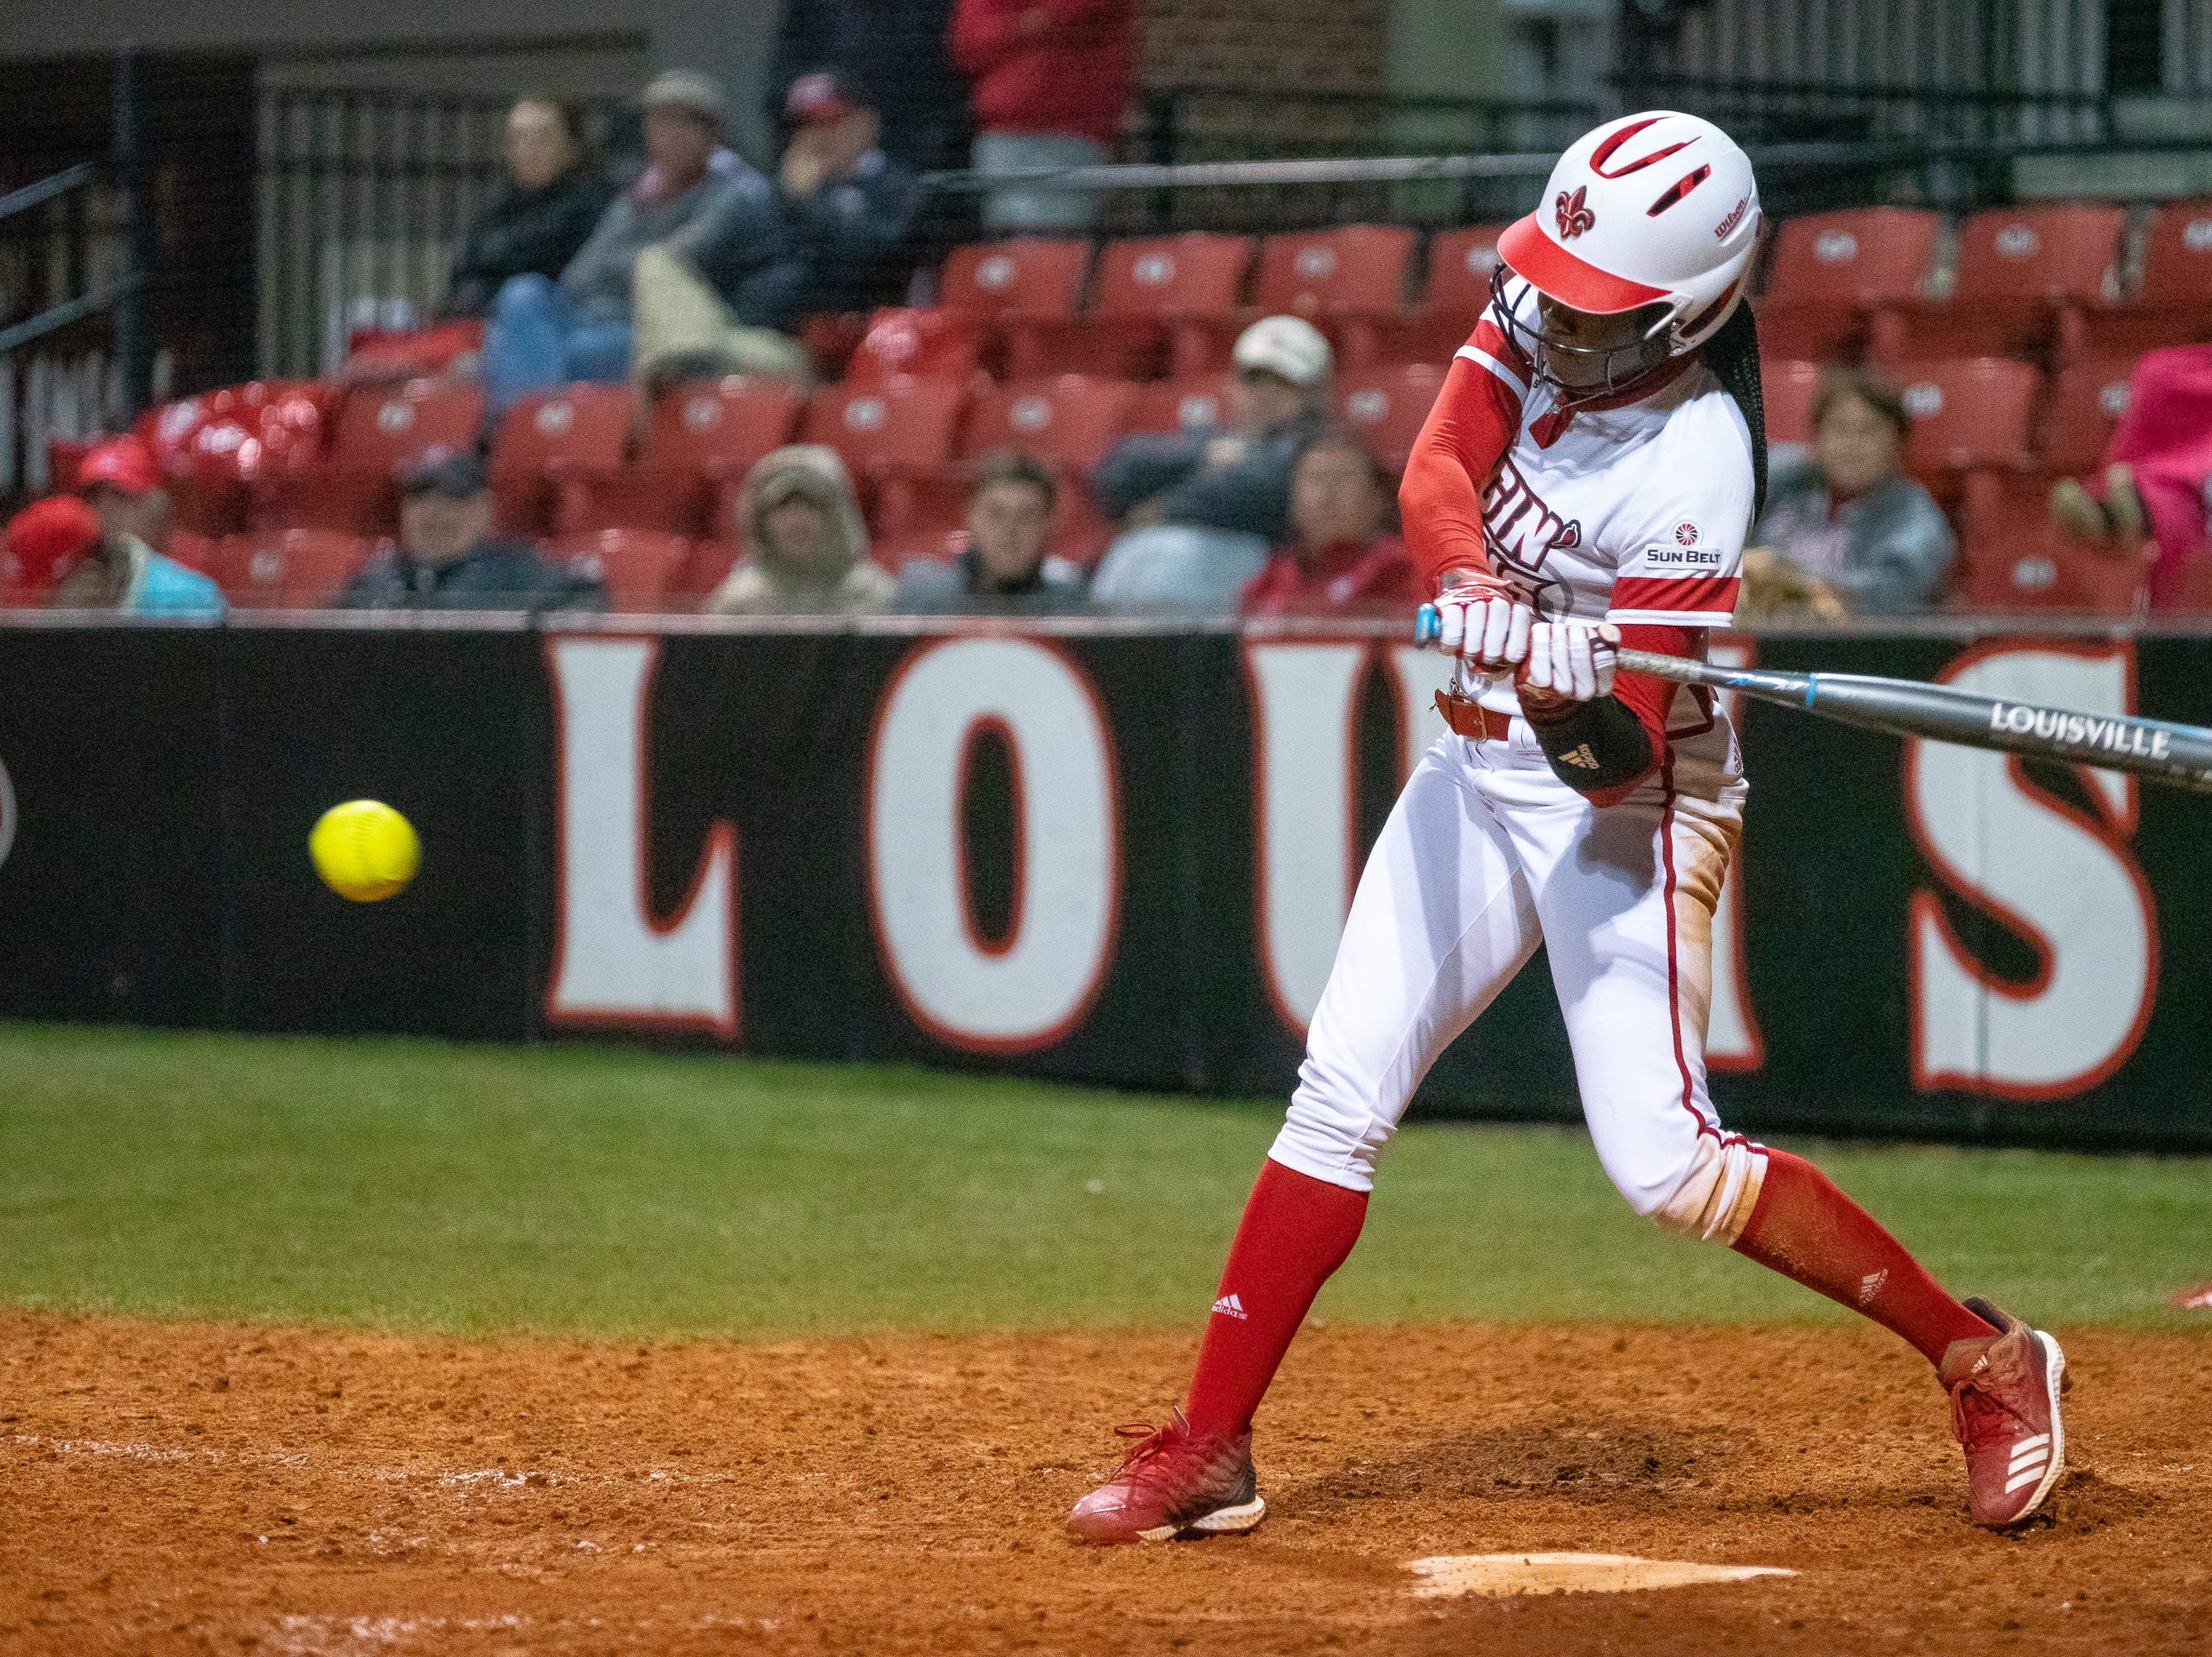 UL's Raina O'Neal swings at the incoming pitch as the Ragin' Cajuns take on the Troy Trojans at Lamson Park, Yvette Girouard Field on Friday, March 15, 2019.